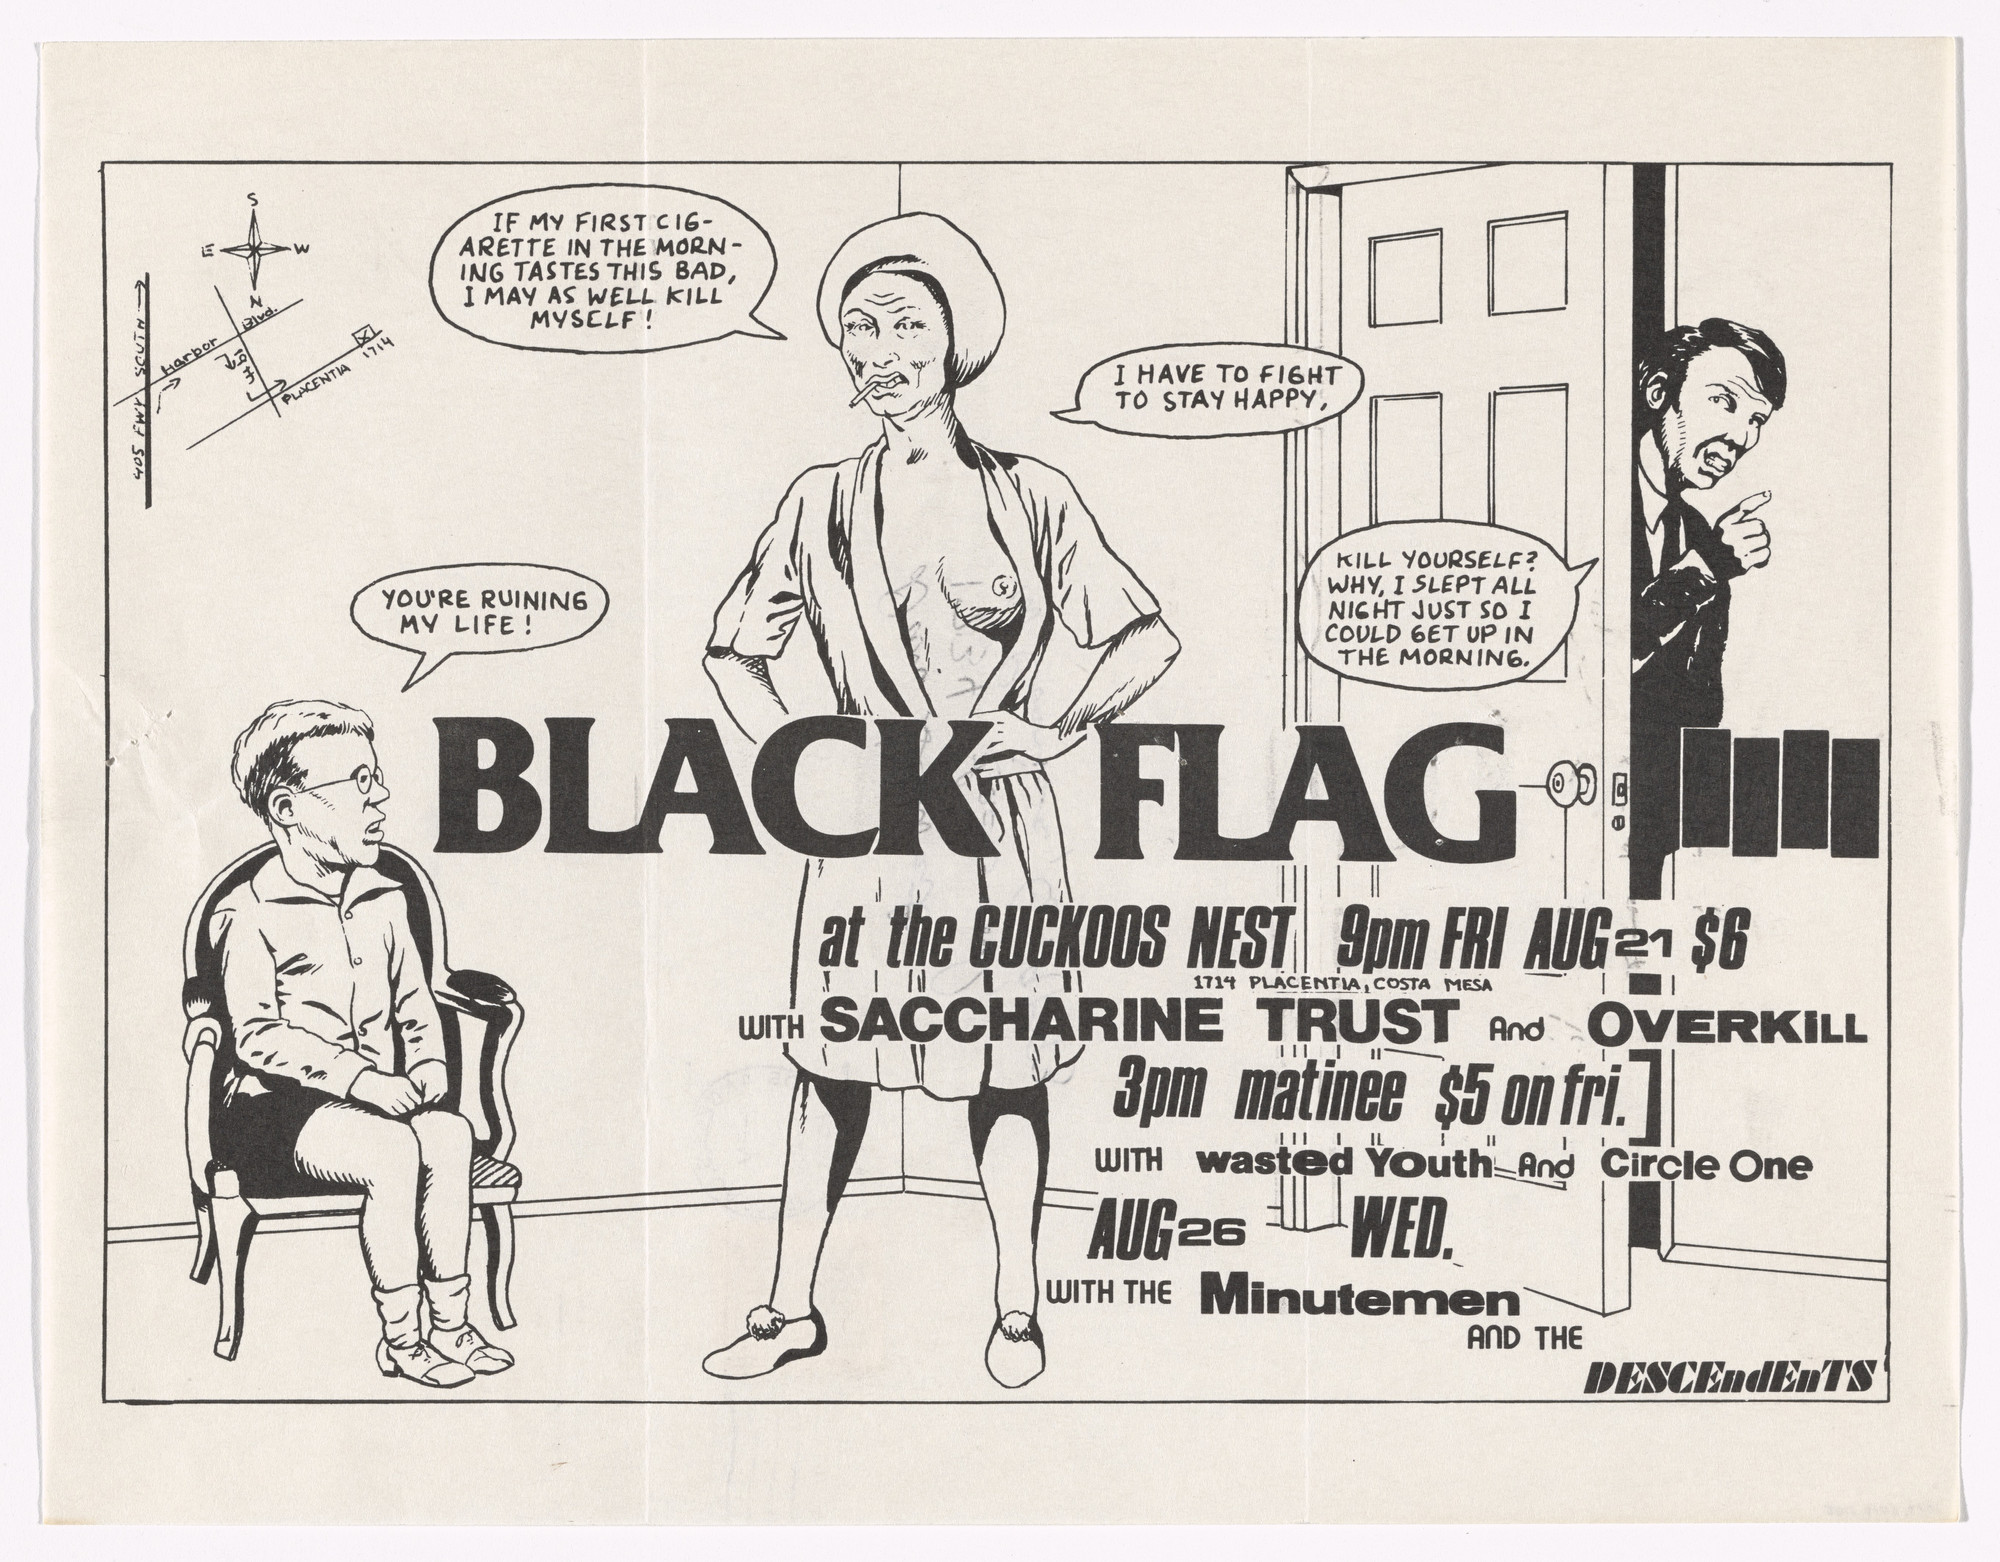 Raymond Pettibon, Circle One. Black Flag at Cuckoos Nest. August 21, 1981